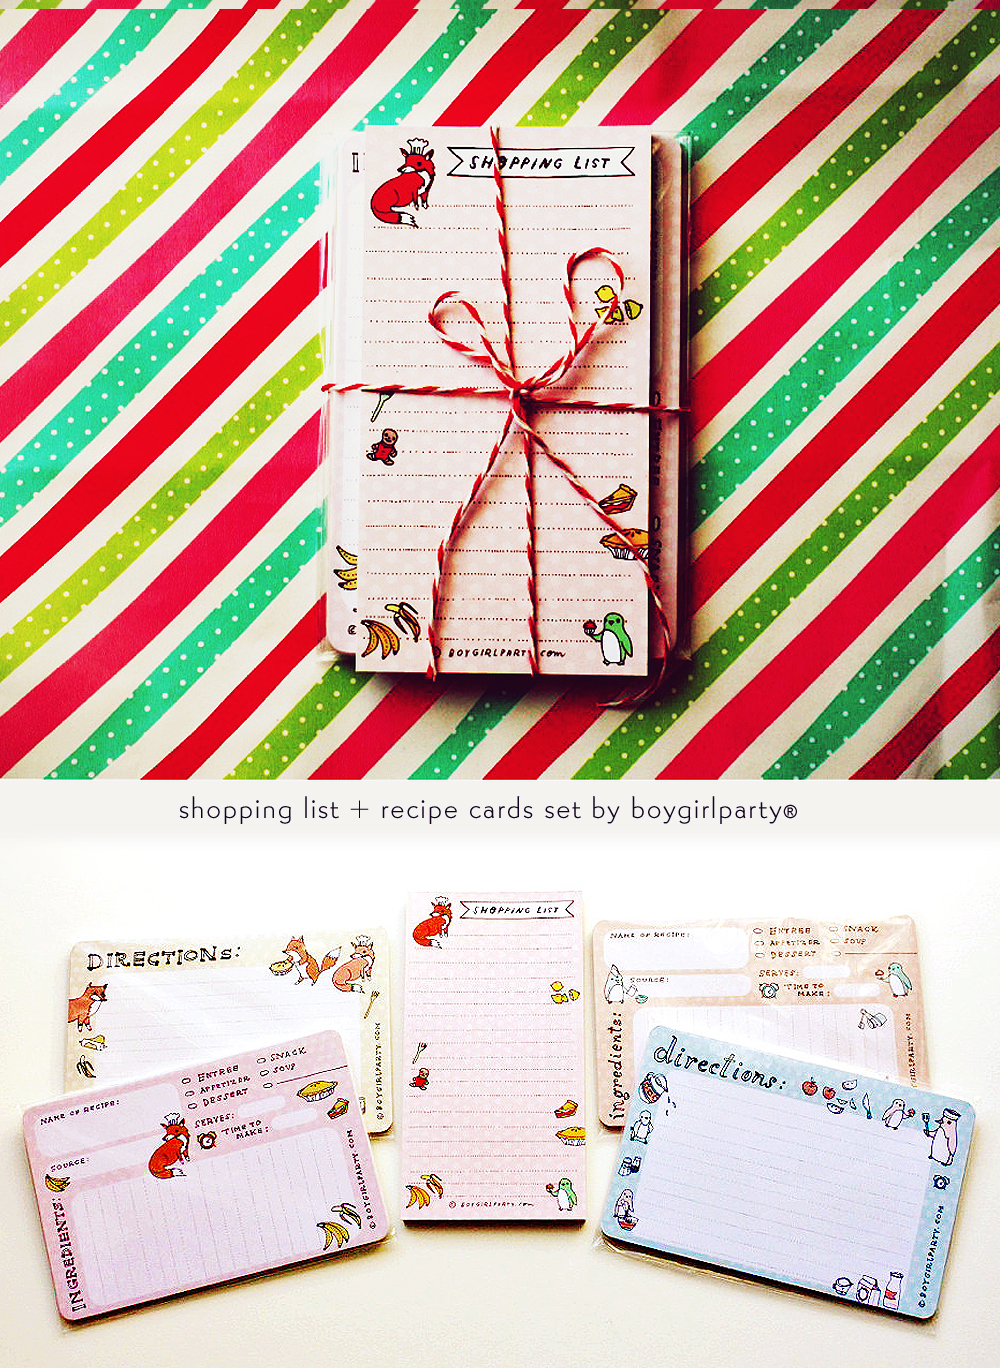 Recipe Cards and Shopping Lists at the boygirlparty shop